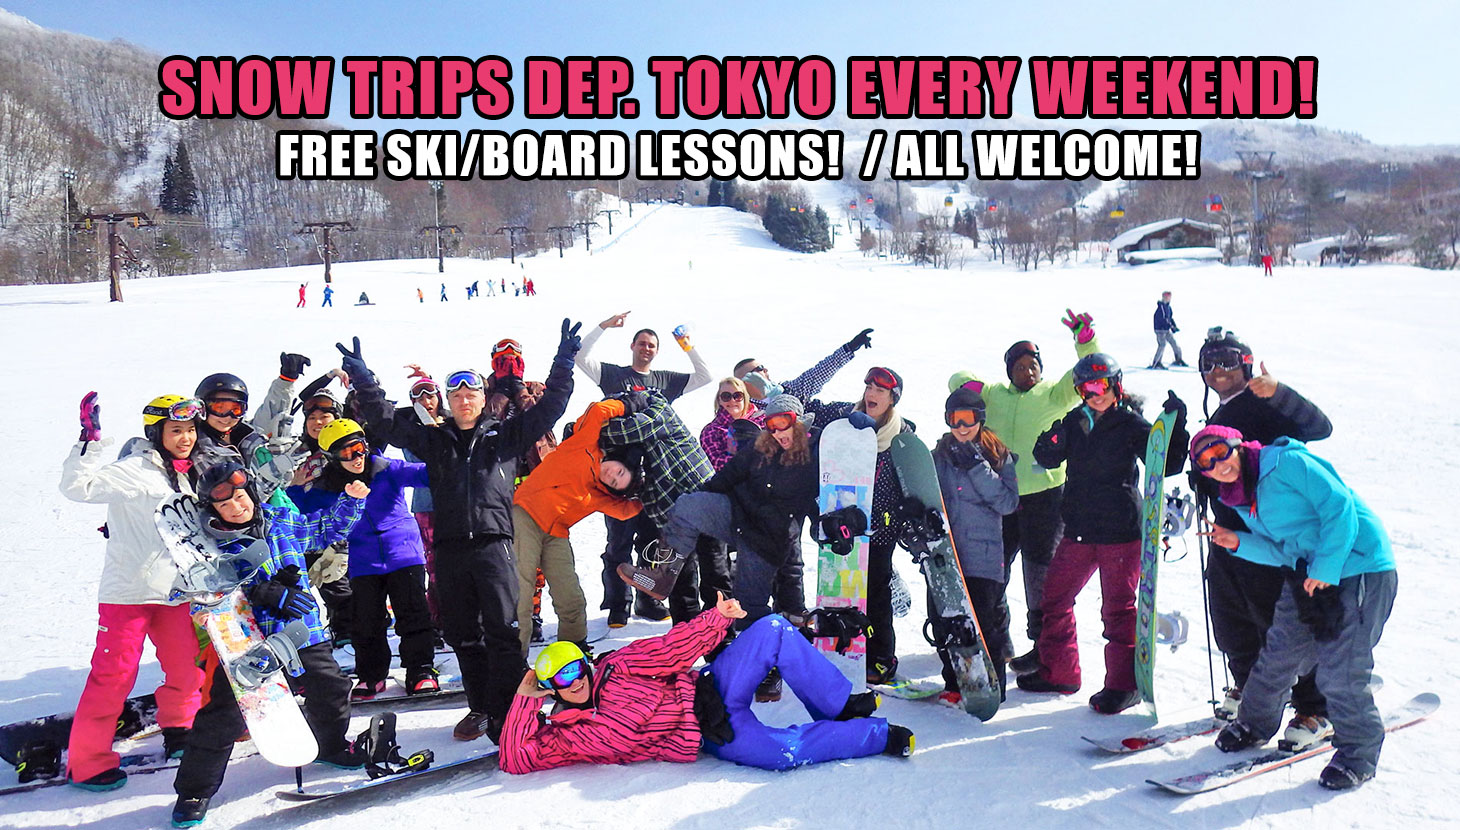 Toyko Snow Club